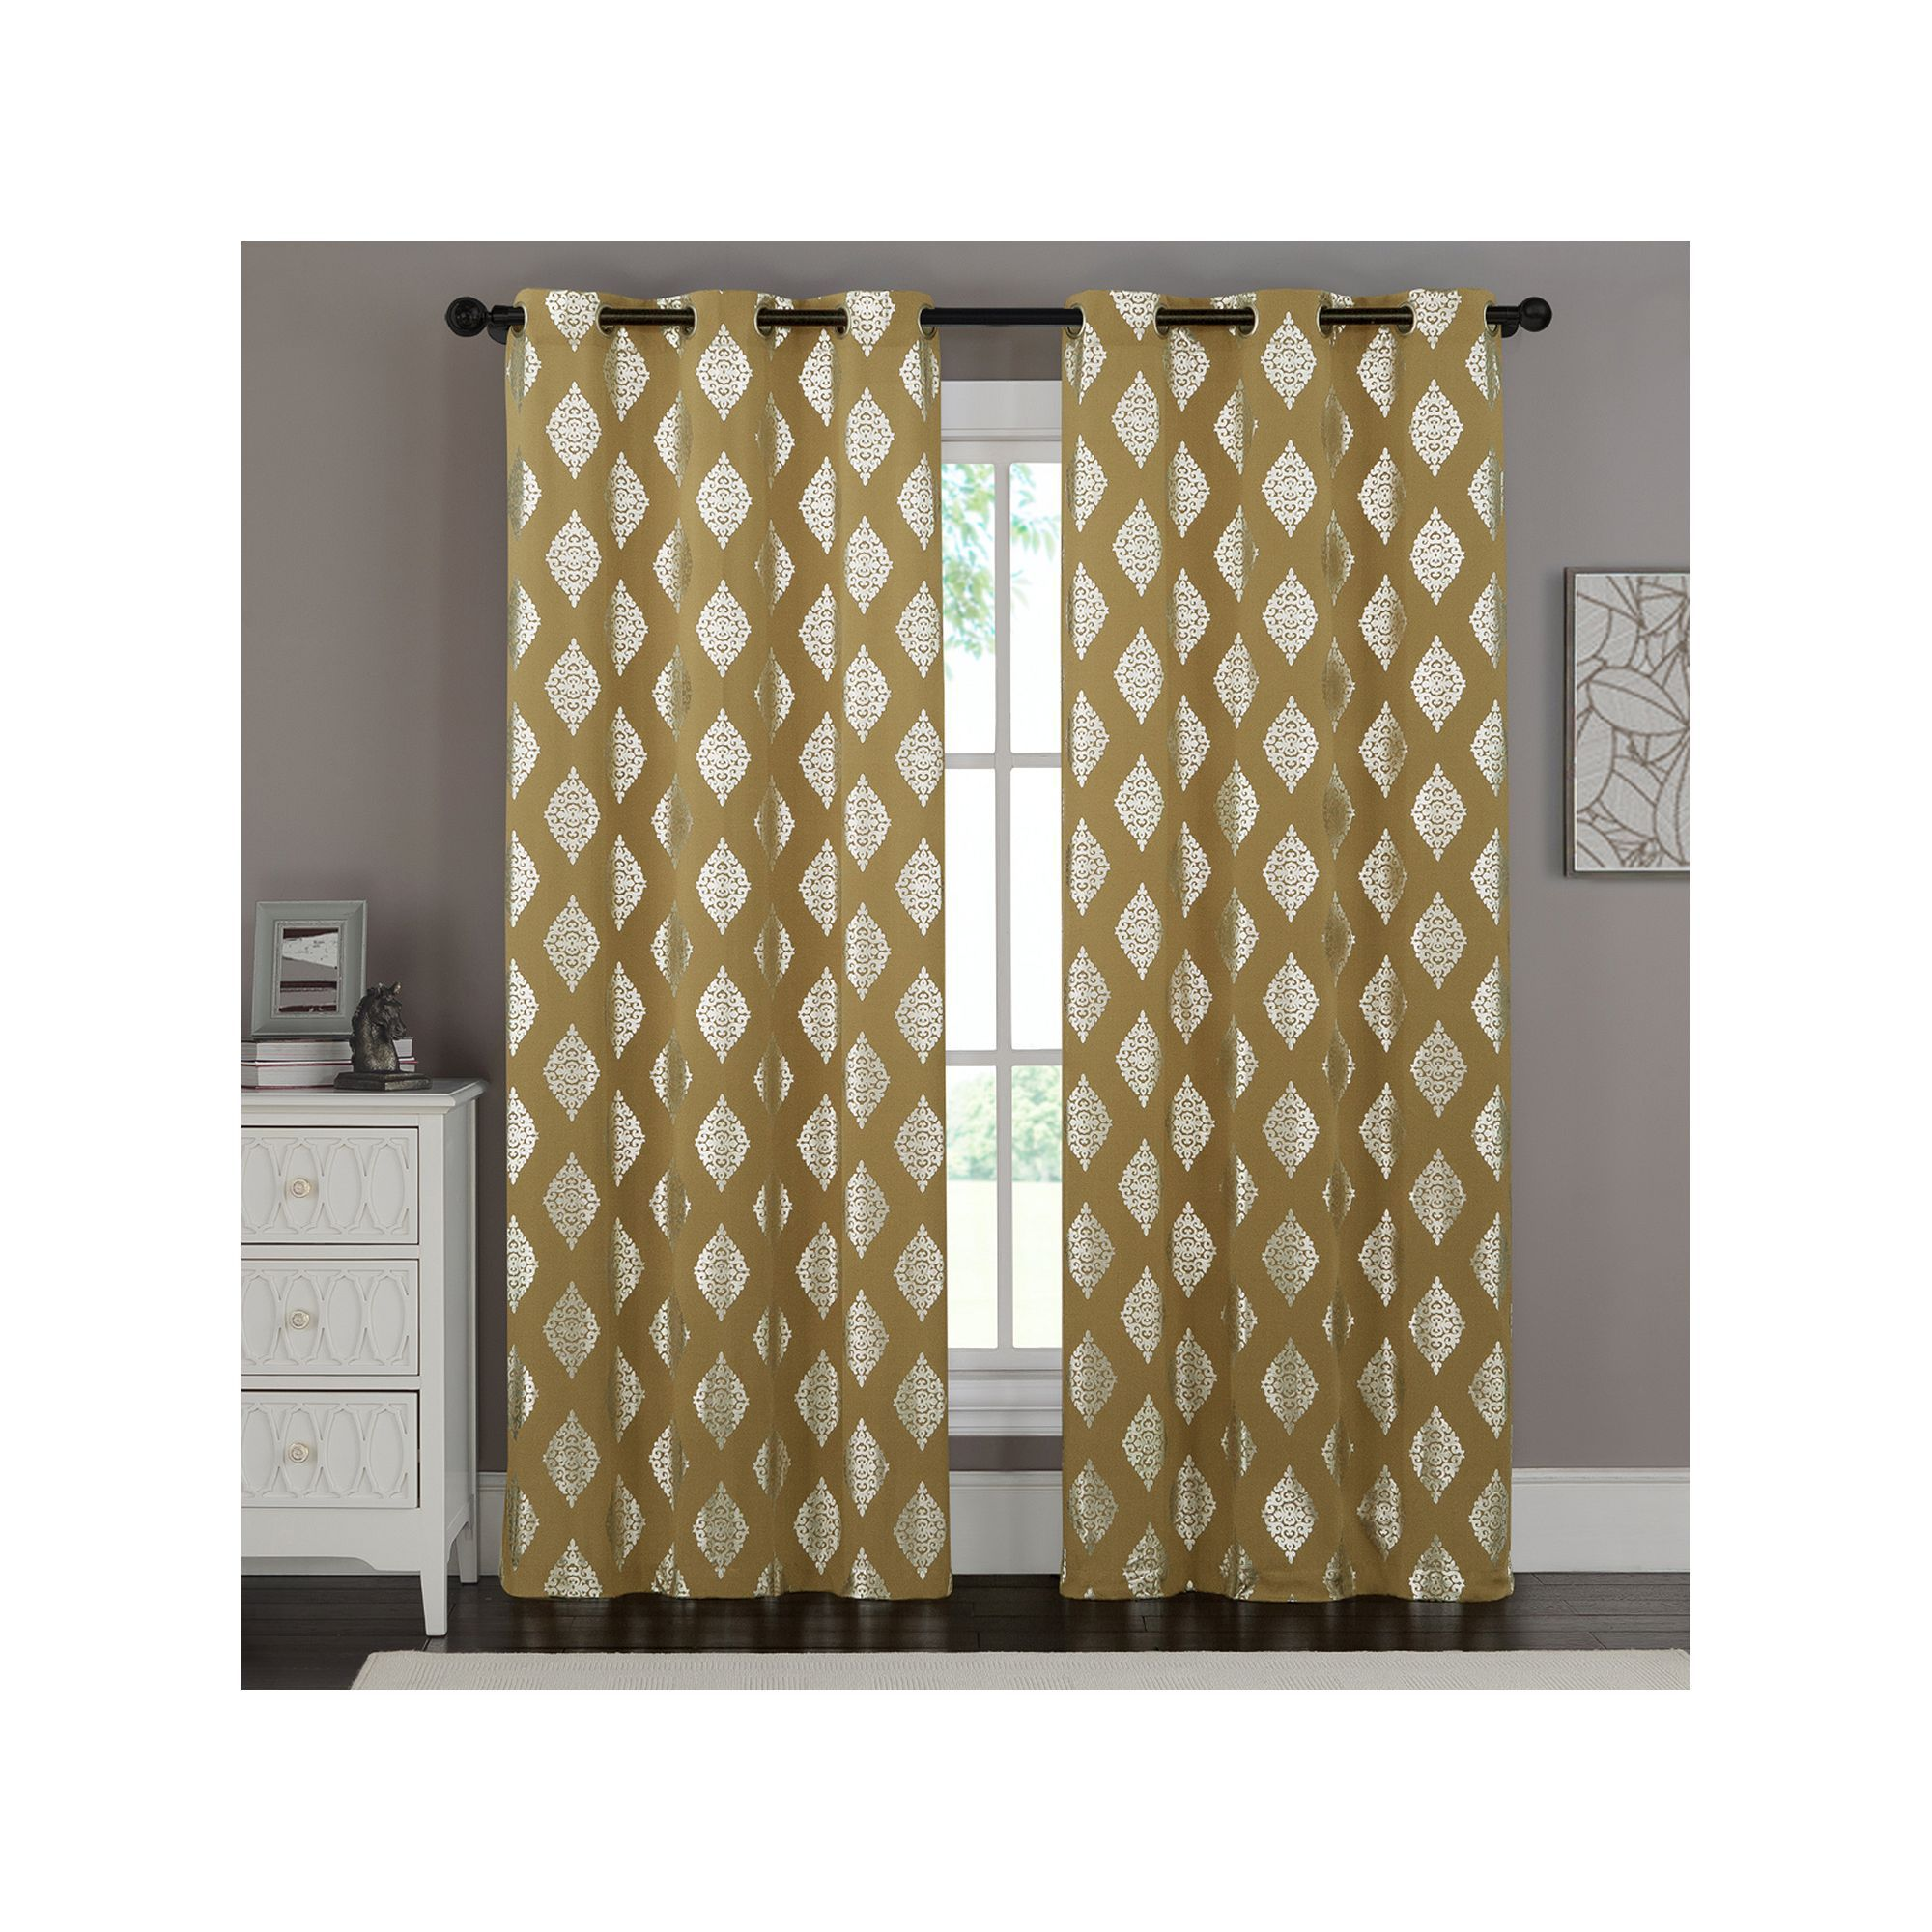 panel rose inspiration residence and curtain gold stripe throughout metallic rugy valuable sheer white your curtains